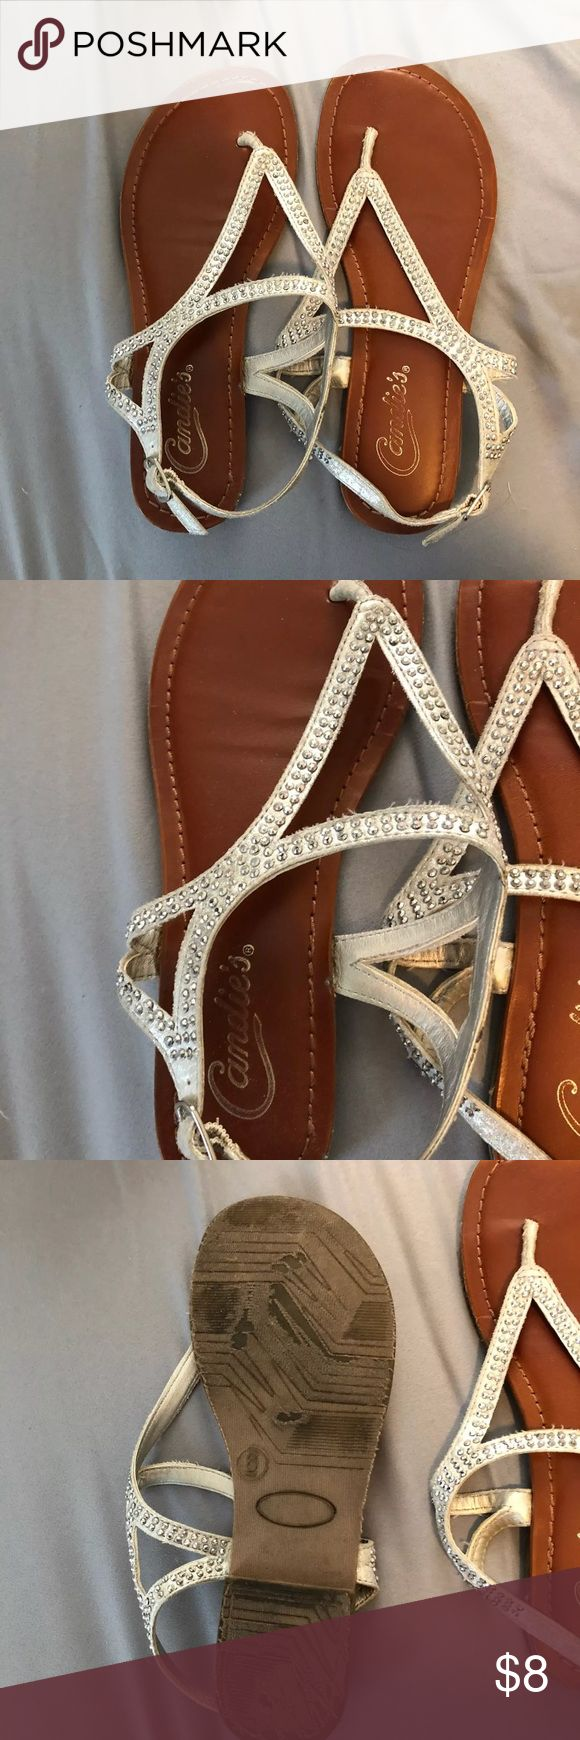 Sparkly sandals Sparkly sandals with rhinestones. Definitely used, but still in good condition. size 6, candies brand. Candie's Shoes Sandals